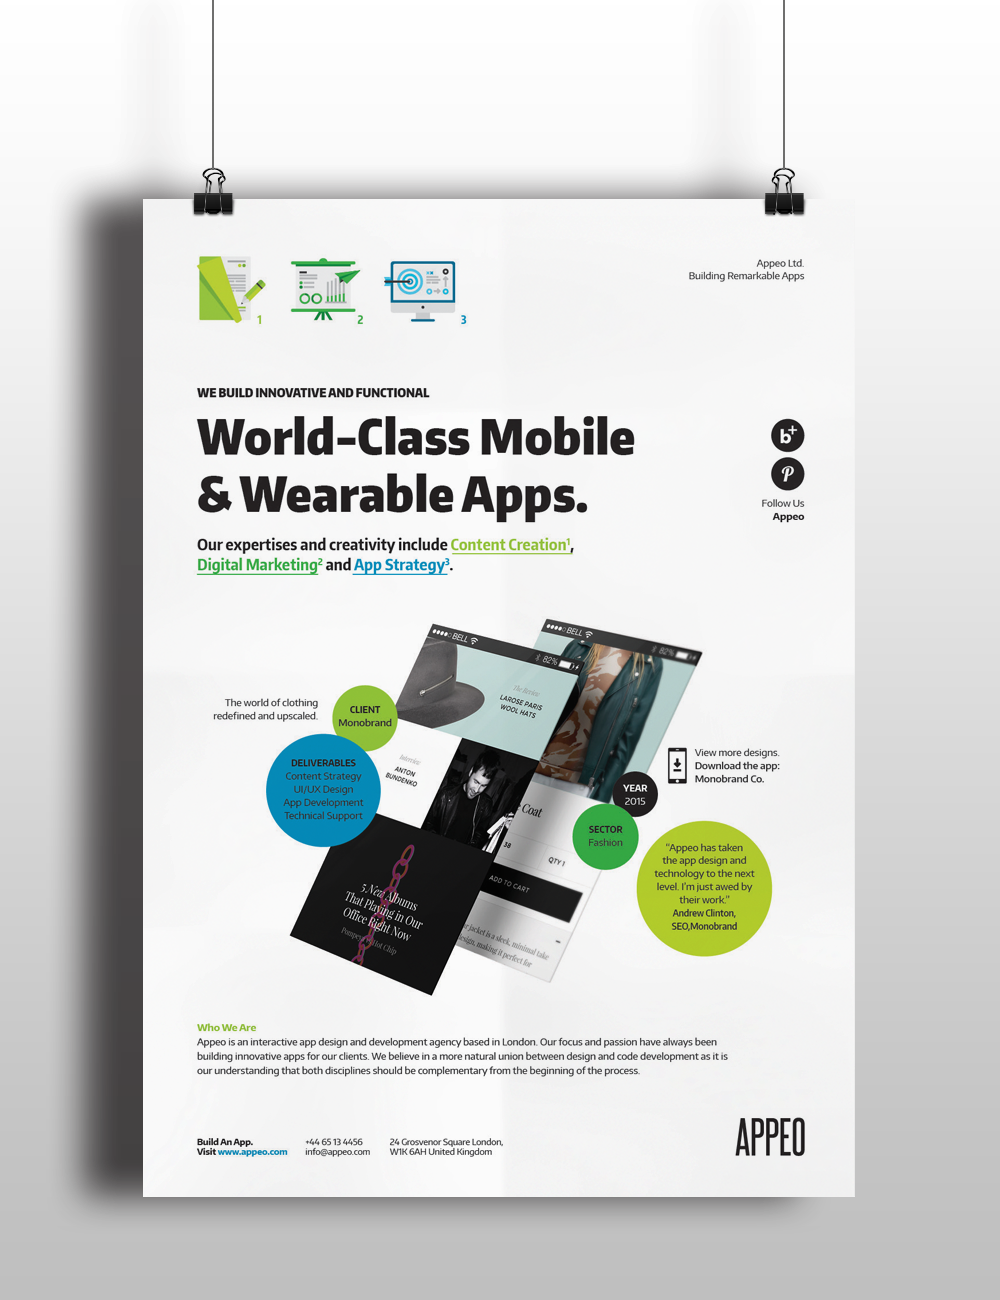 Design Poster Templates - A set of 4 mobile application flyer poster templates created for app studios or agencies to promote their app design and development services